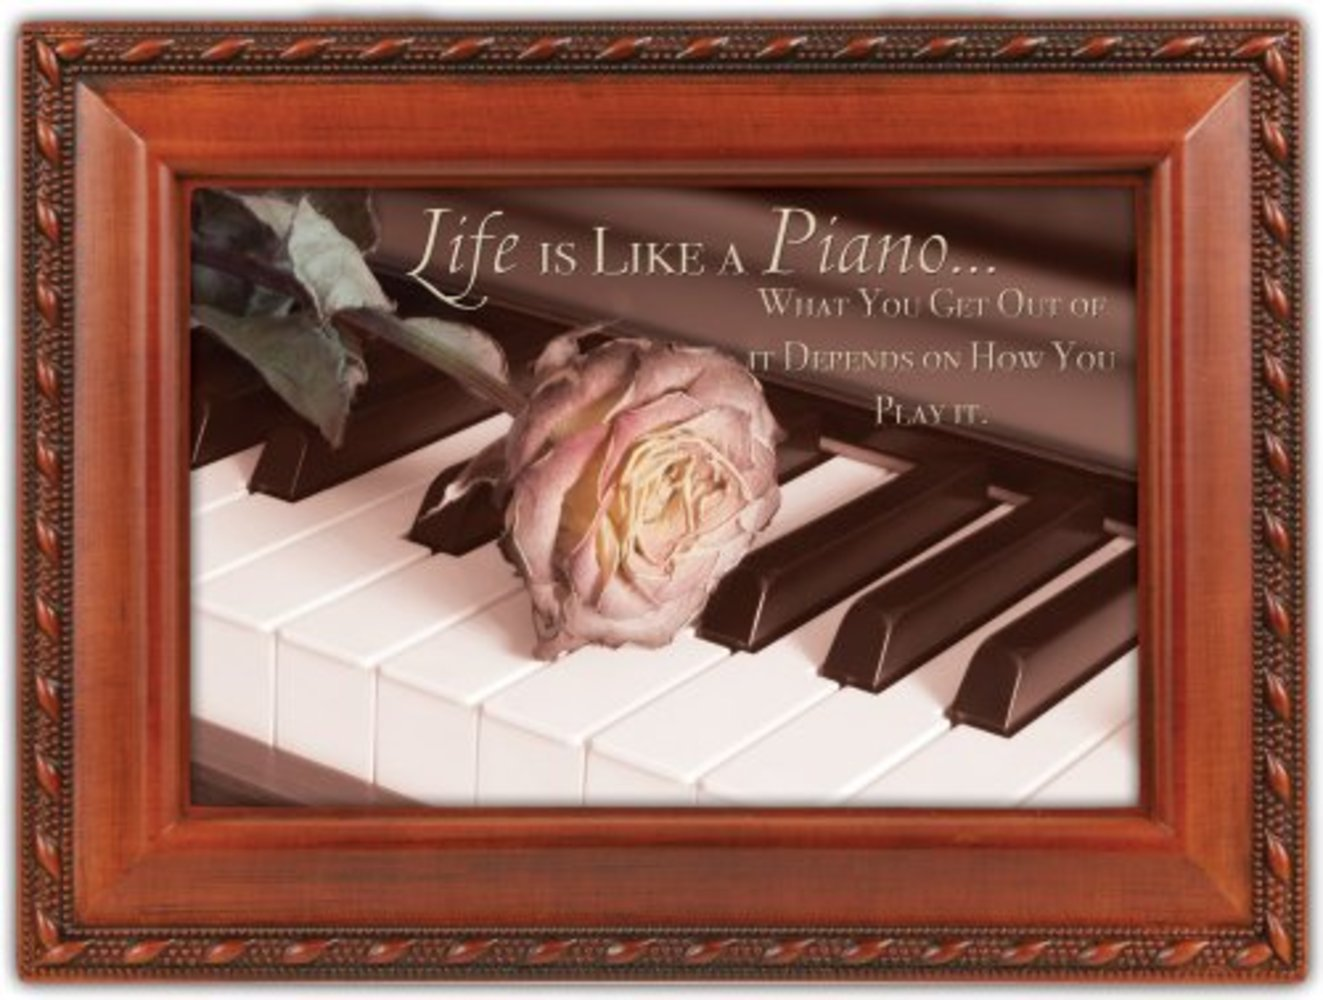 Cottage Garden Life Is Like A Piano Woodgrain Music Box Plays Unchained Melody by